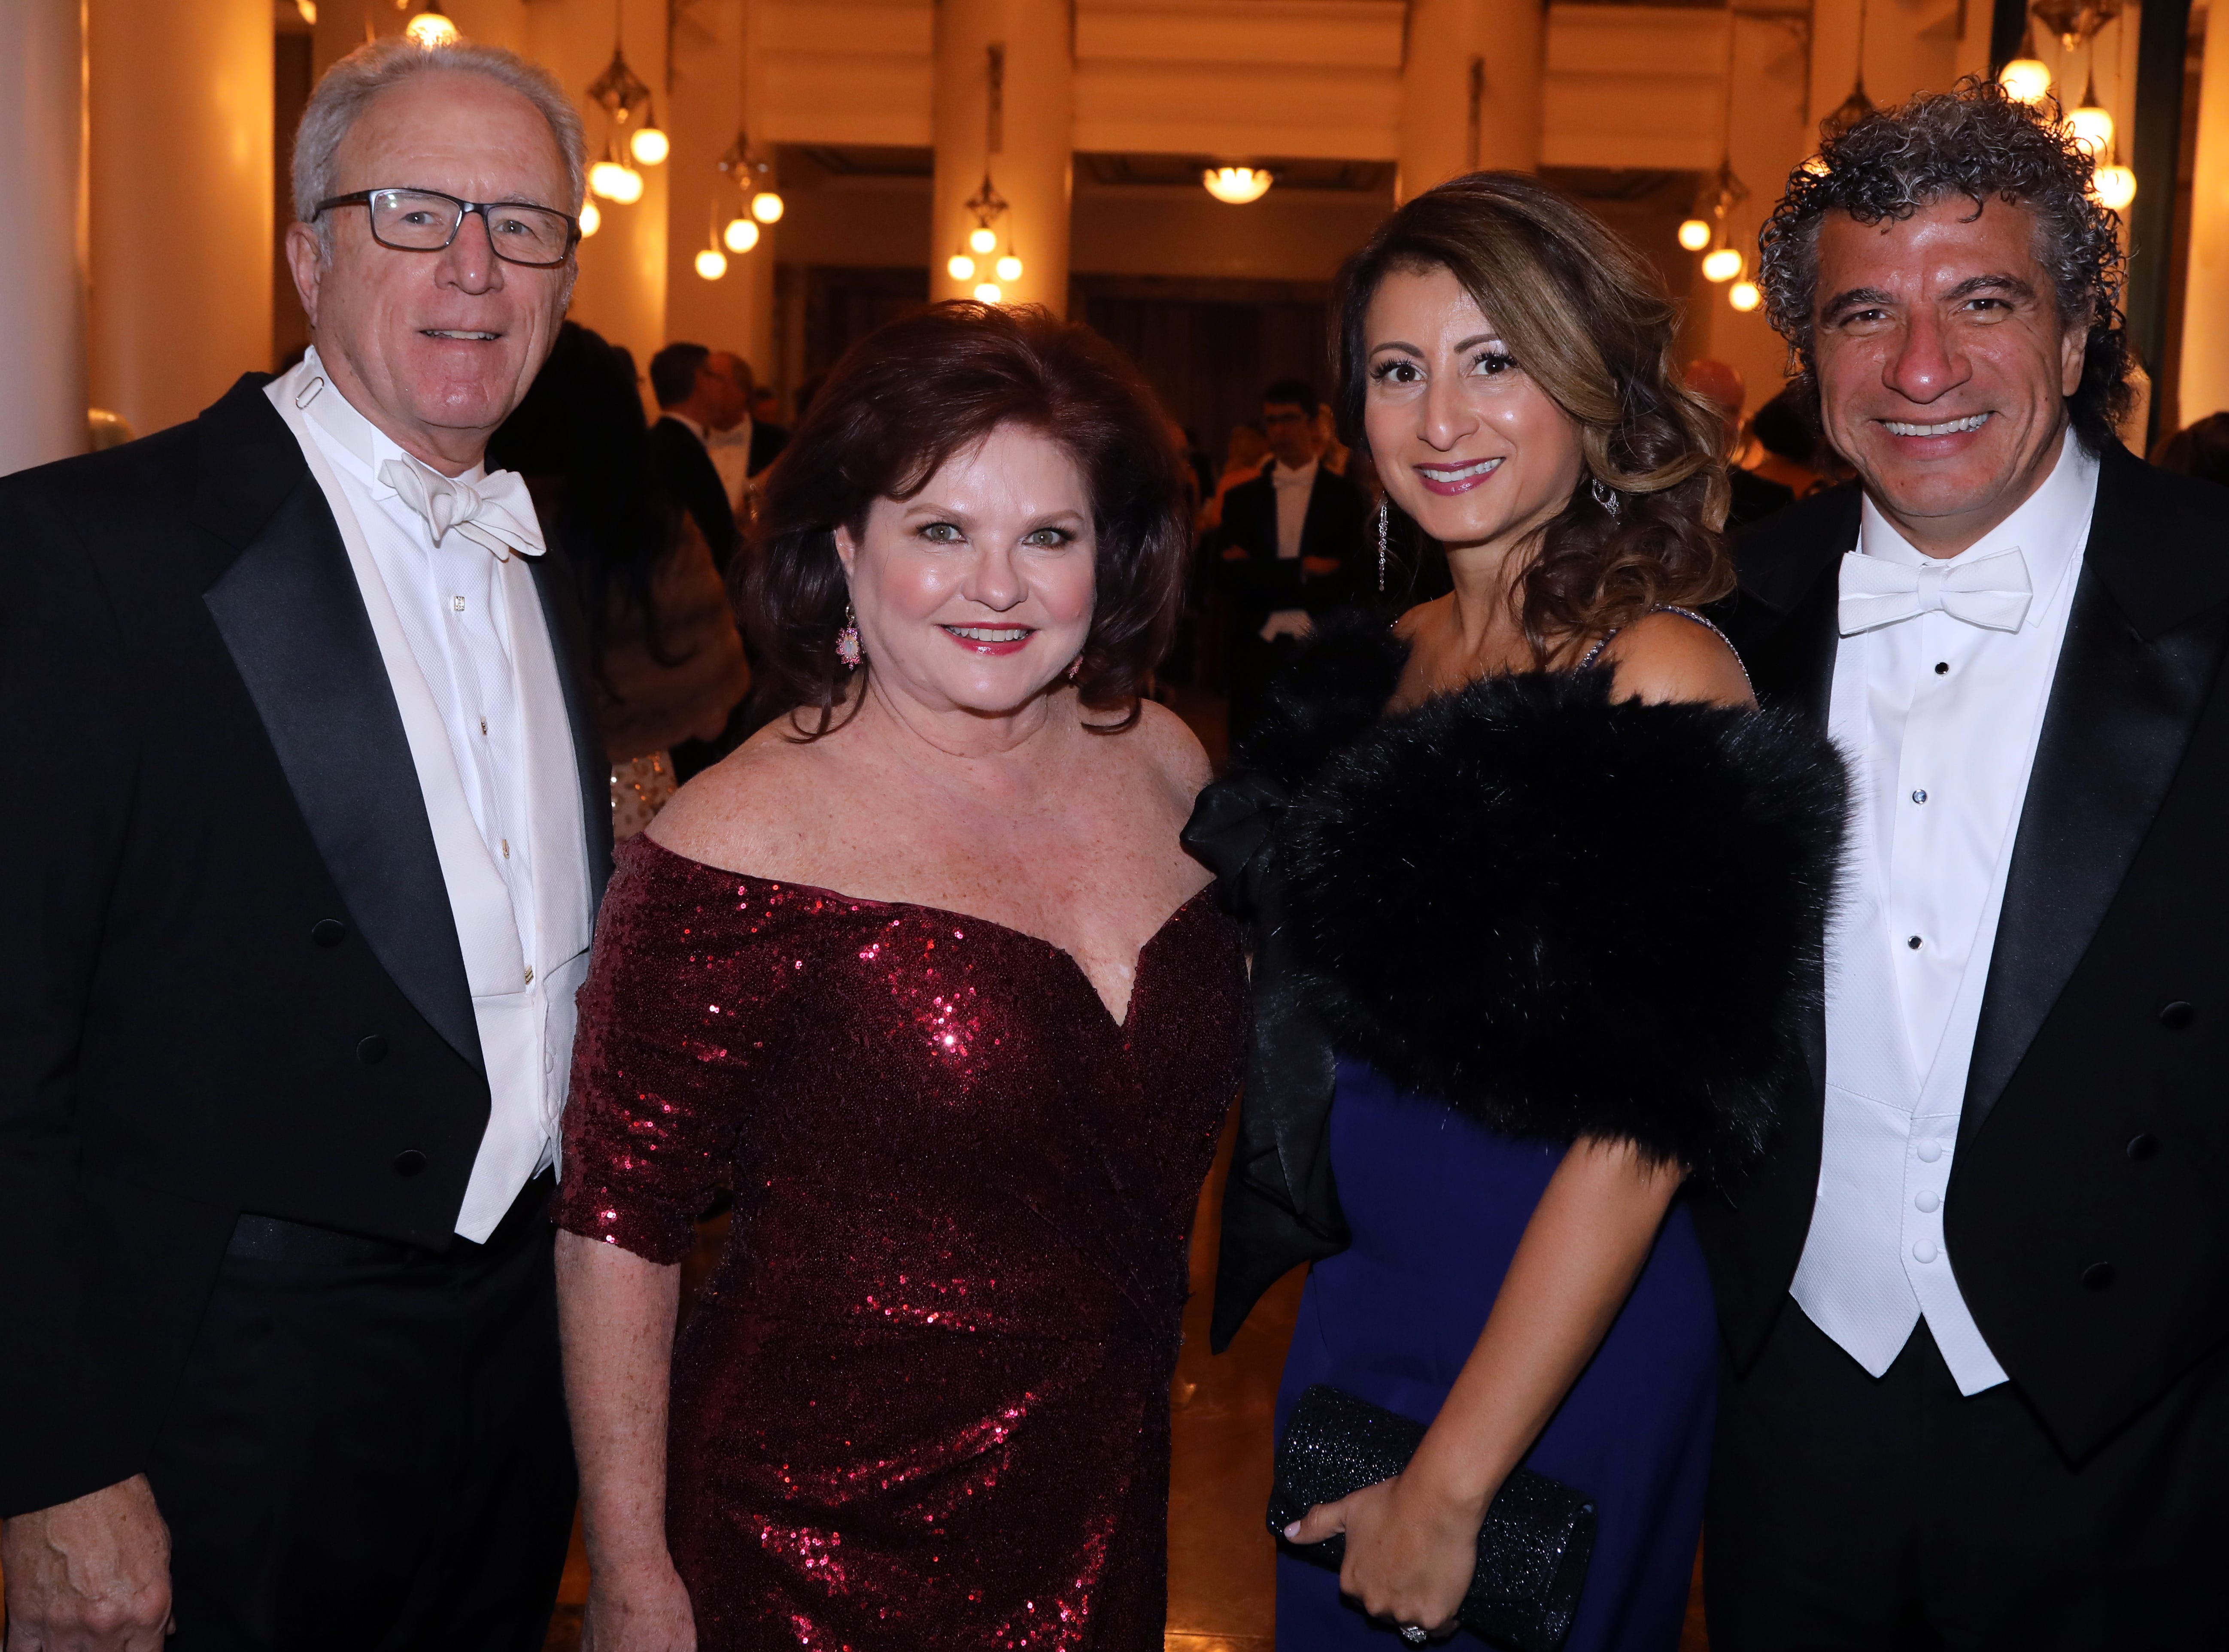 Rick and Vicki Horne and Giancarlo and Shirley Guerreroat the 34th annual Symphony Ball on Saturday, December 8, 2018, at Schermerhorn Symphony Center.